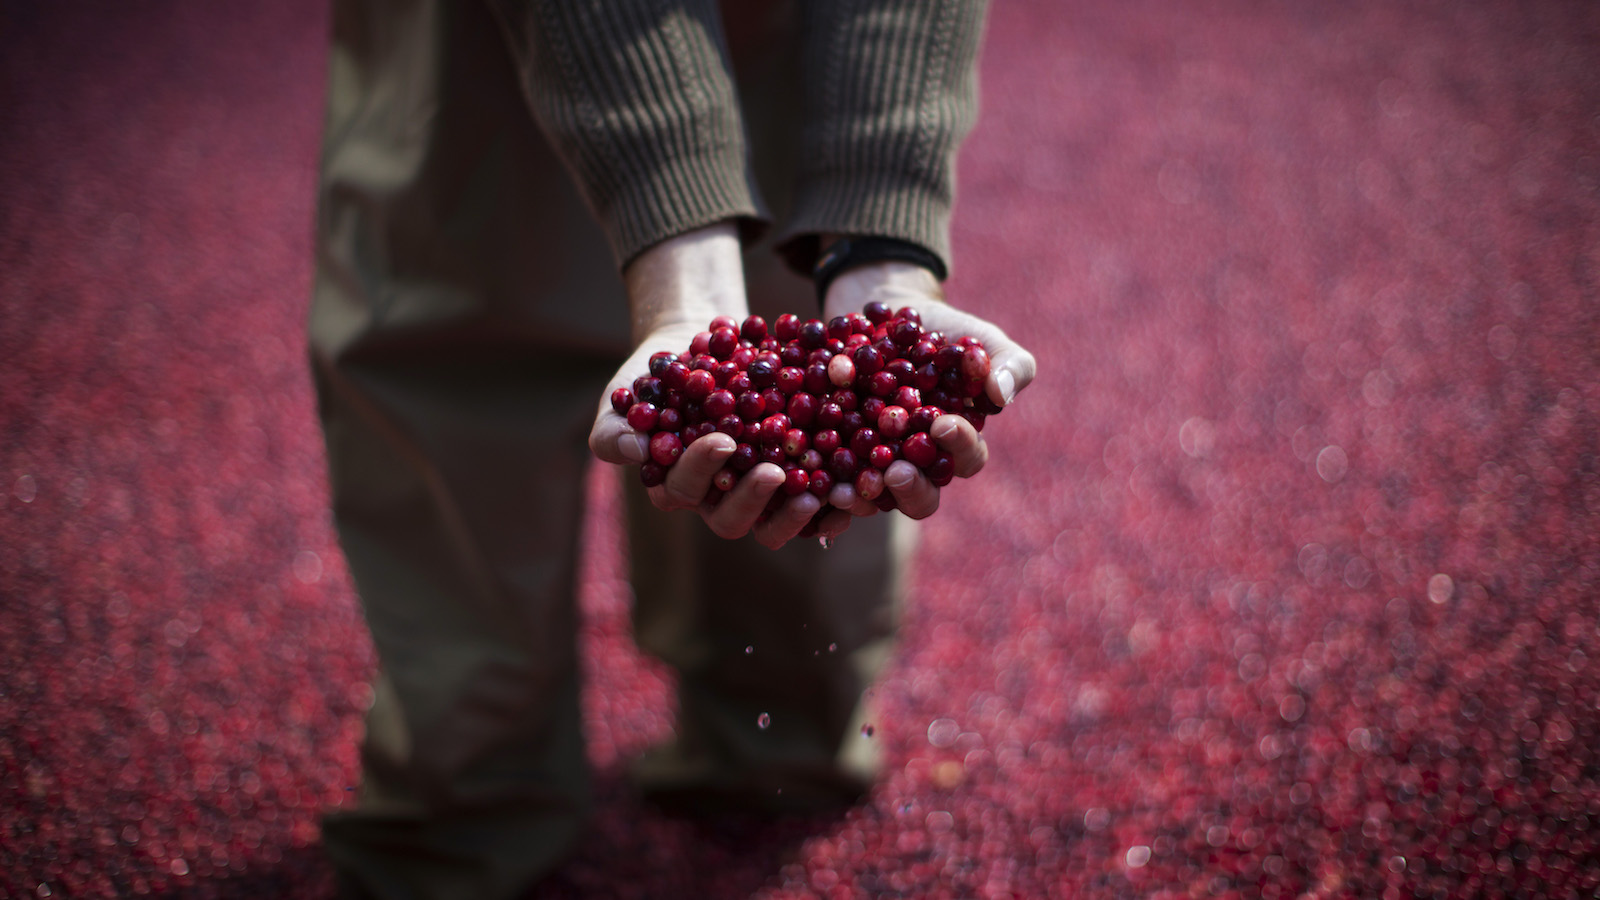 An employee of the Ocean Spray company holds cranberries as he stands in a pool of some 2000 pounds (907 kg) of floating cranberries at a promotional cranberry bog display set up at New York's Rockefeller Center, October 17, 2014. The exhibit in the heavily trafficked area of midtown Manhattan has cranberry farmers and scientists from the company on hand to answer questions about their cranberry products' health benefits and the growing process.  REUTERS/Mike Segar   (UNITED STATES - Tags: SOCIETY FOOD AGRICULTURE BUSINESS TPX IMAGES OF THE DAY) - RTR4ALZG